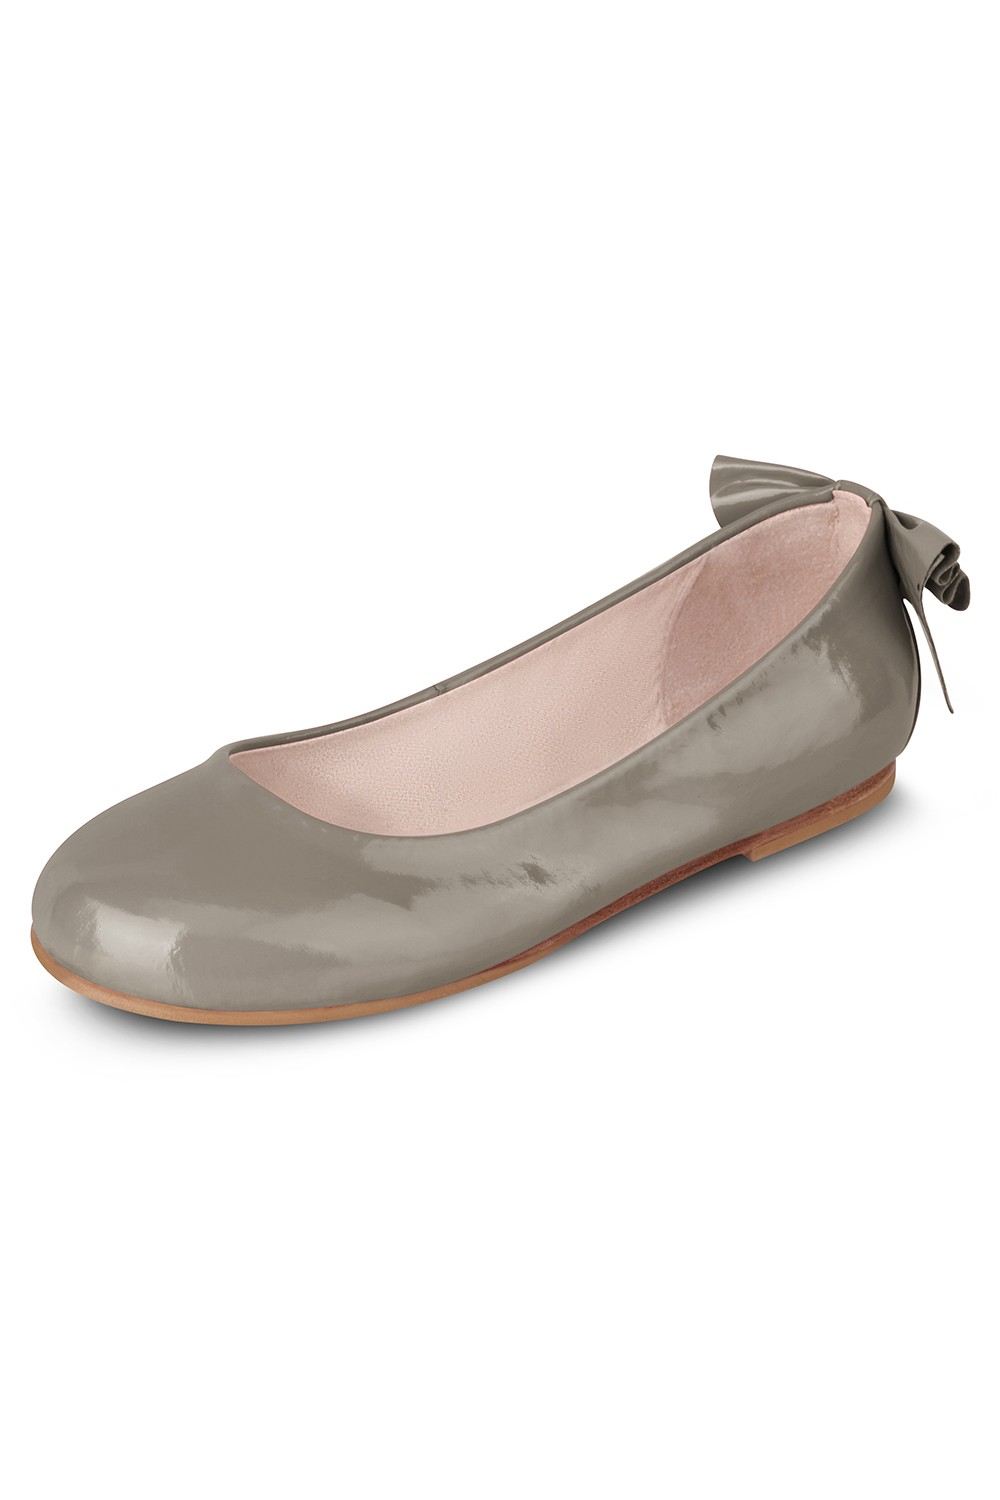 Chloe Girls Ballet Flat Girls Fashion Shoes